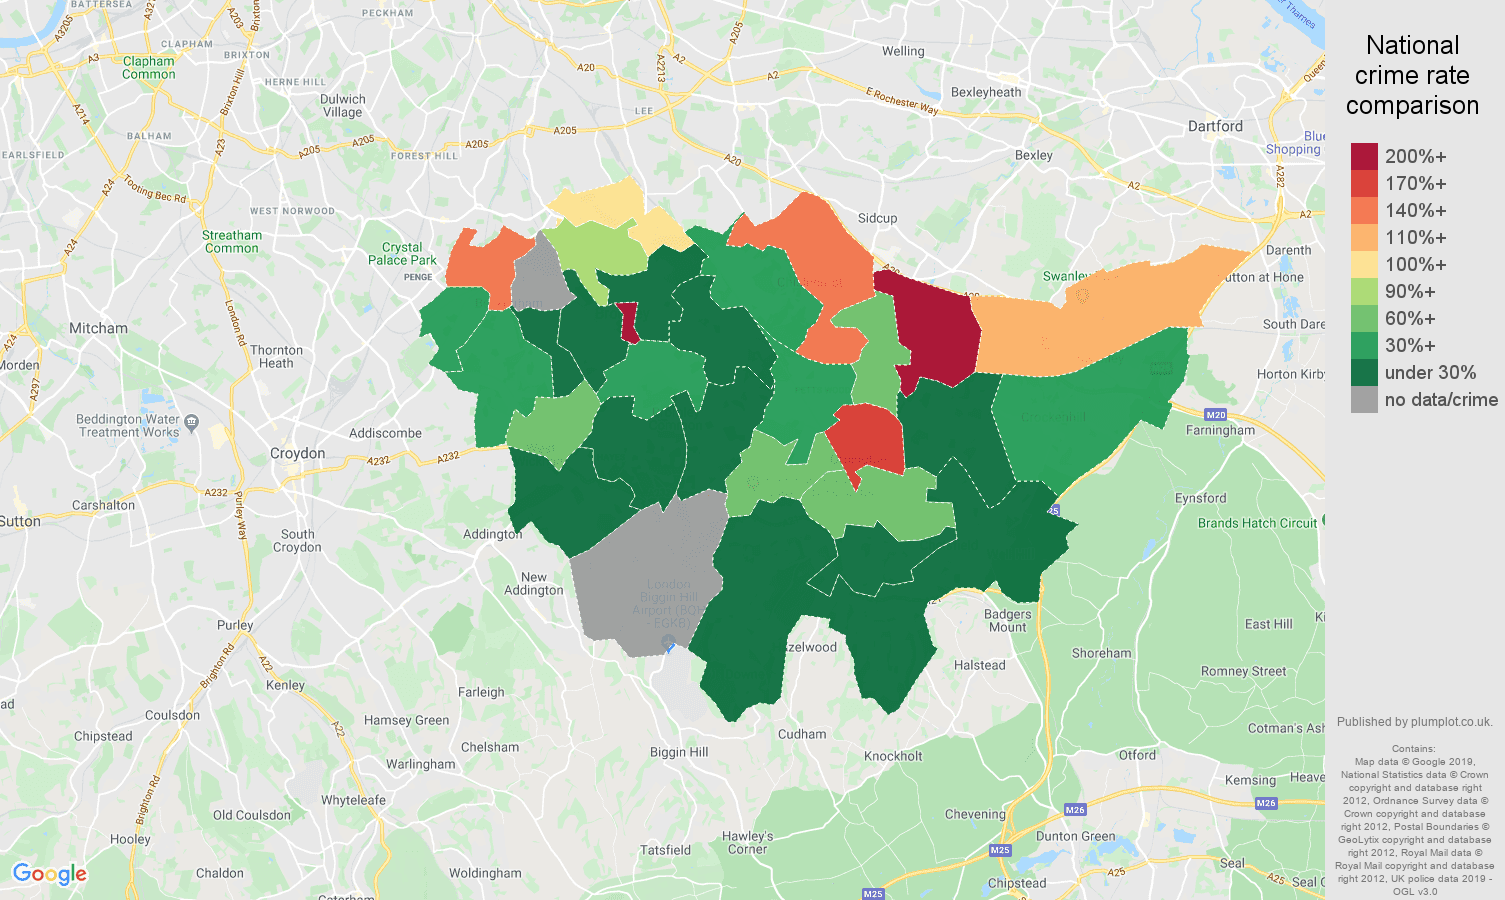 Bromley shoplifting crime rate comparison map